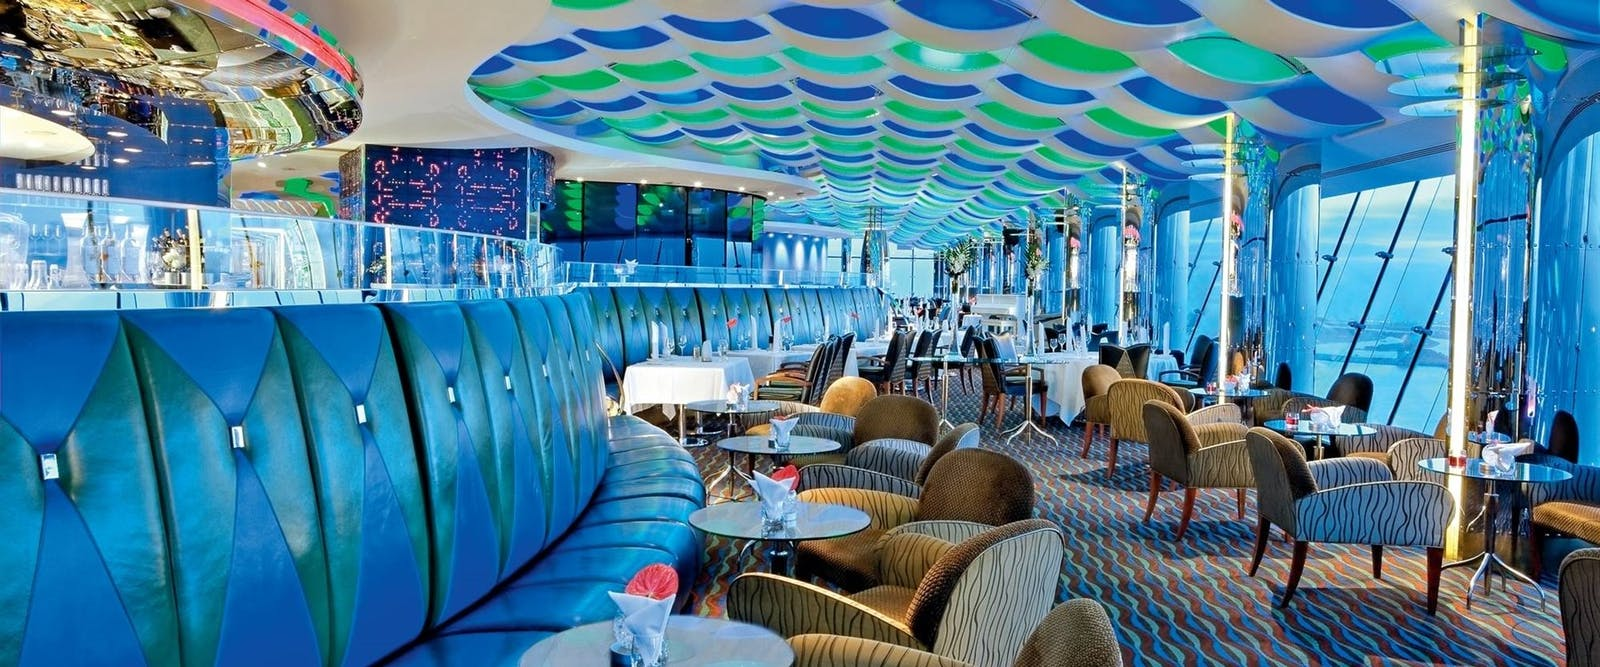 Skyview bar at Burj Al Arab, Dubai